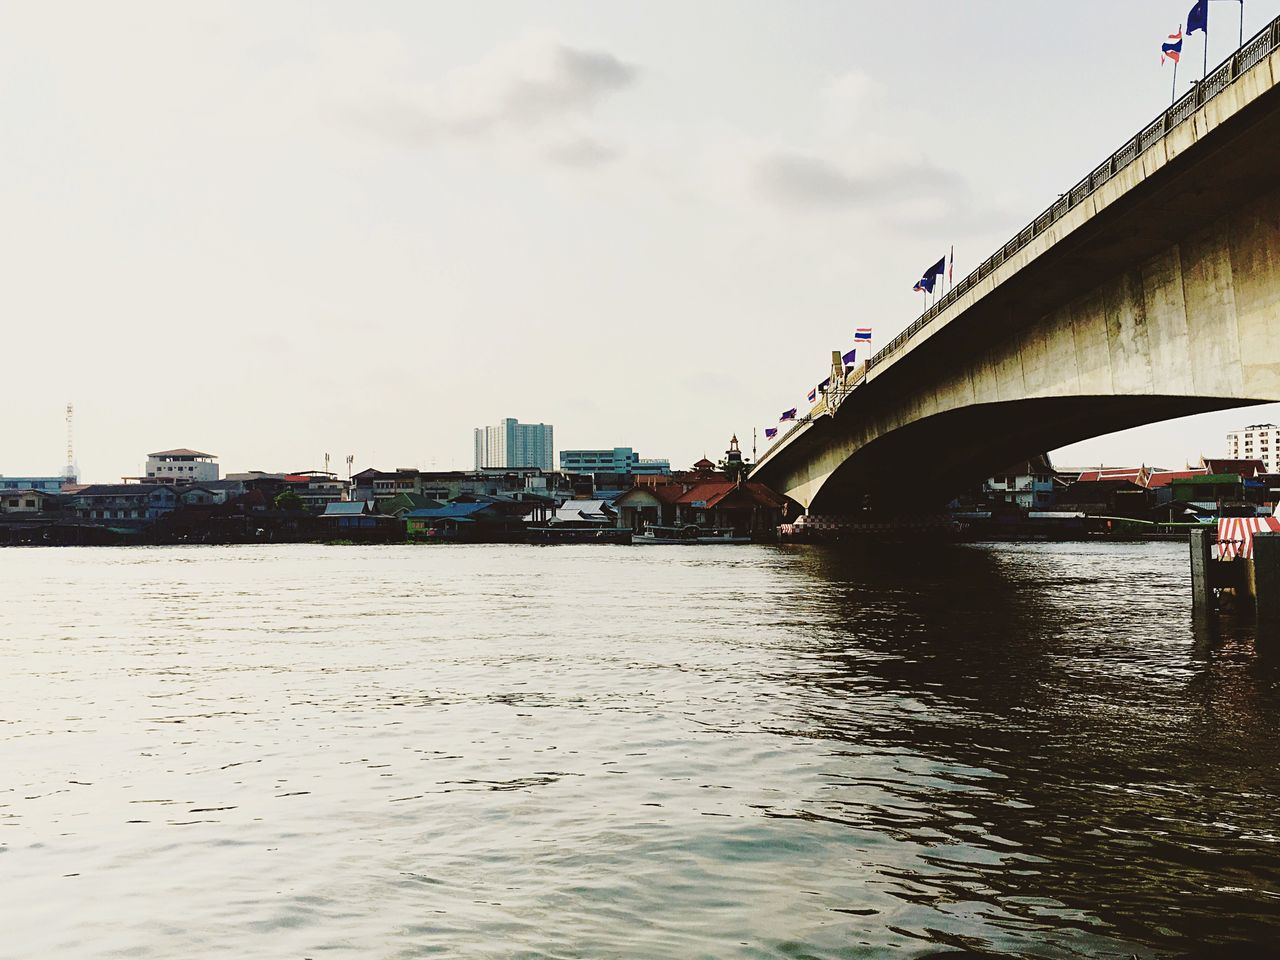 bridge - man made structure, connection, architecture, built structure, transportation, river, sky, water, waterfront, cloud - sky, outdoors, rippled, day, no people, building exterior, city, nautical vessel, nature